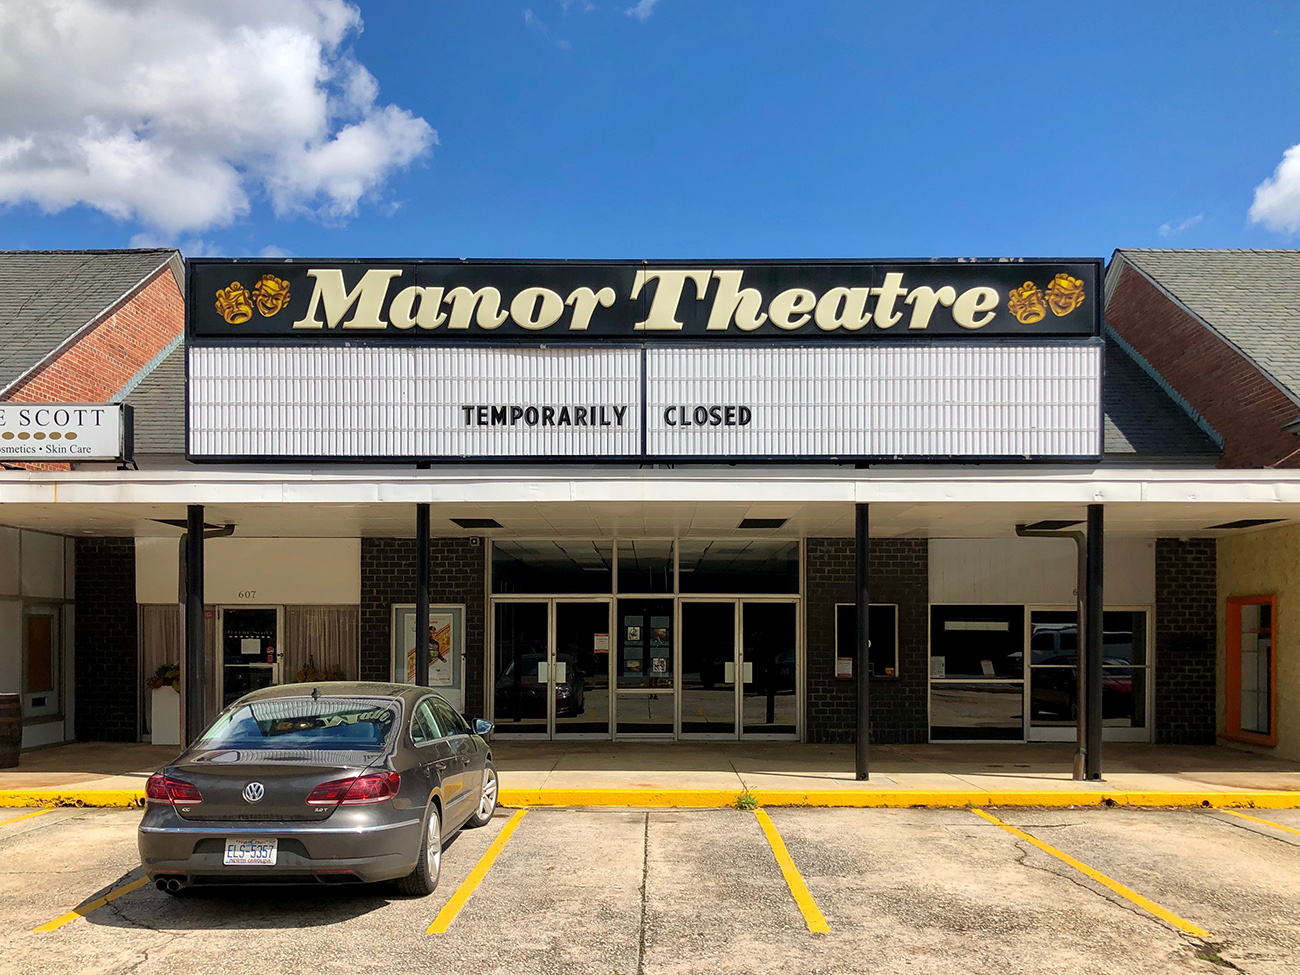 The beloved Manor Theatre will close after 73 years in Myers Park